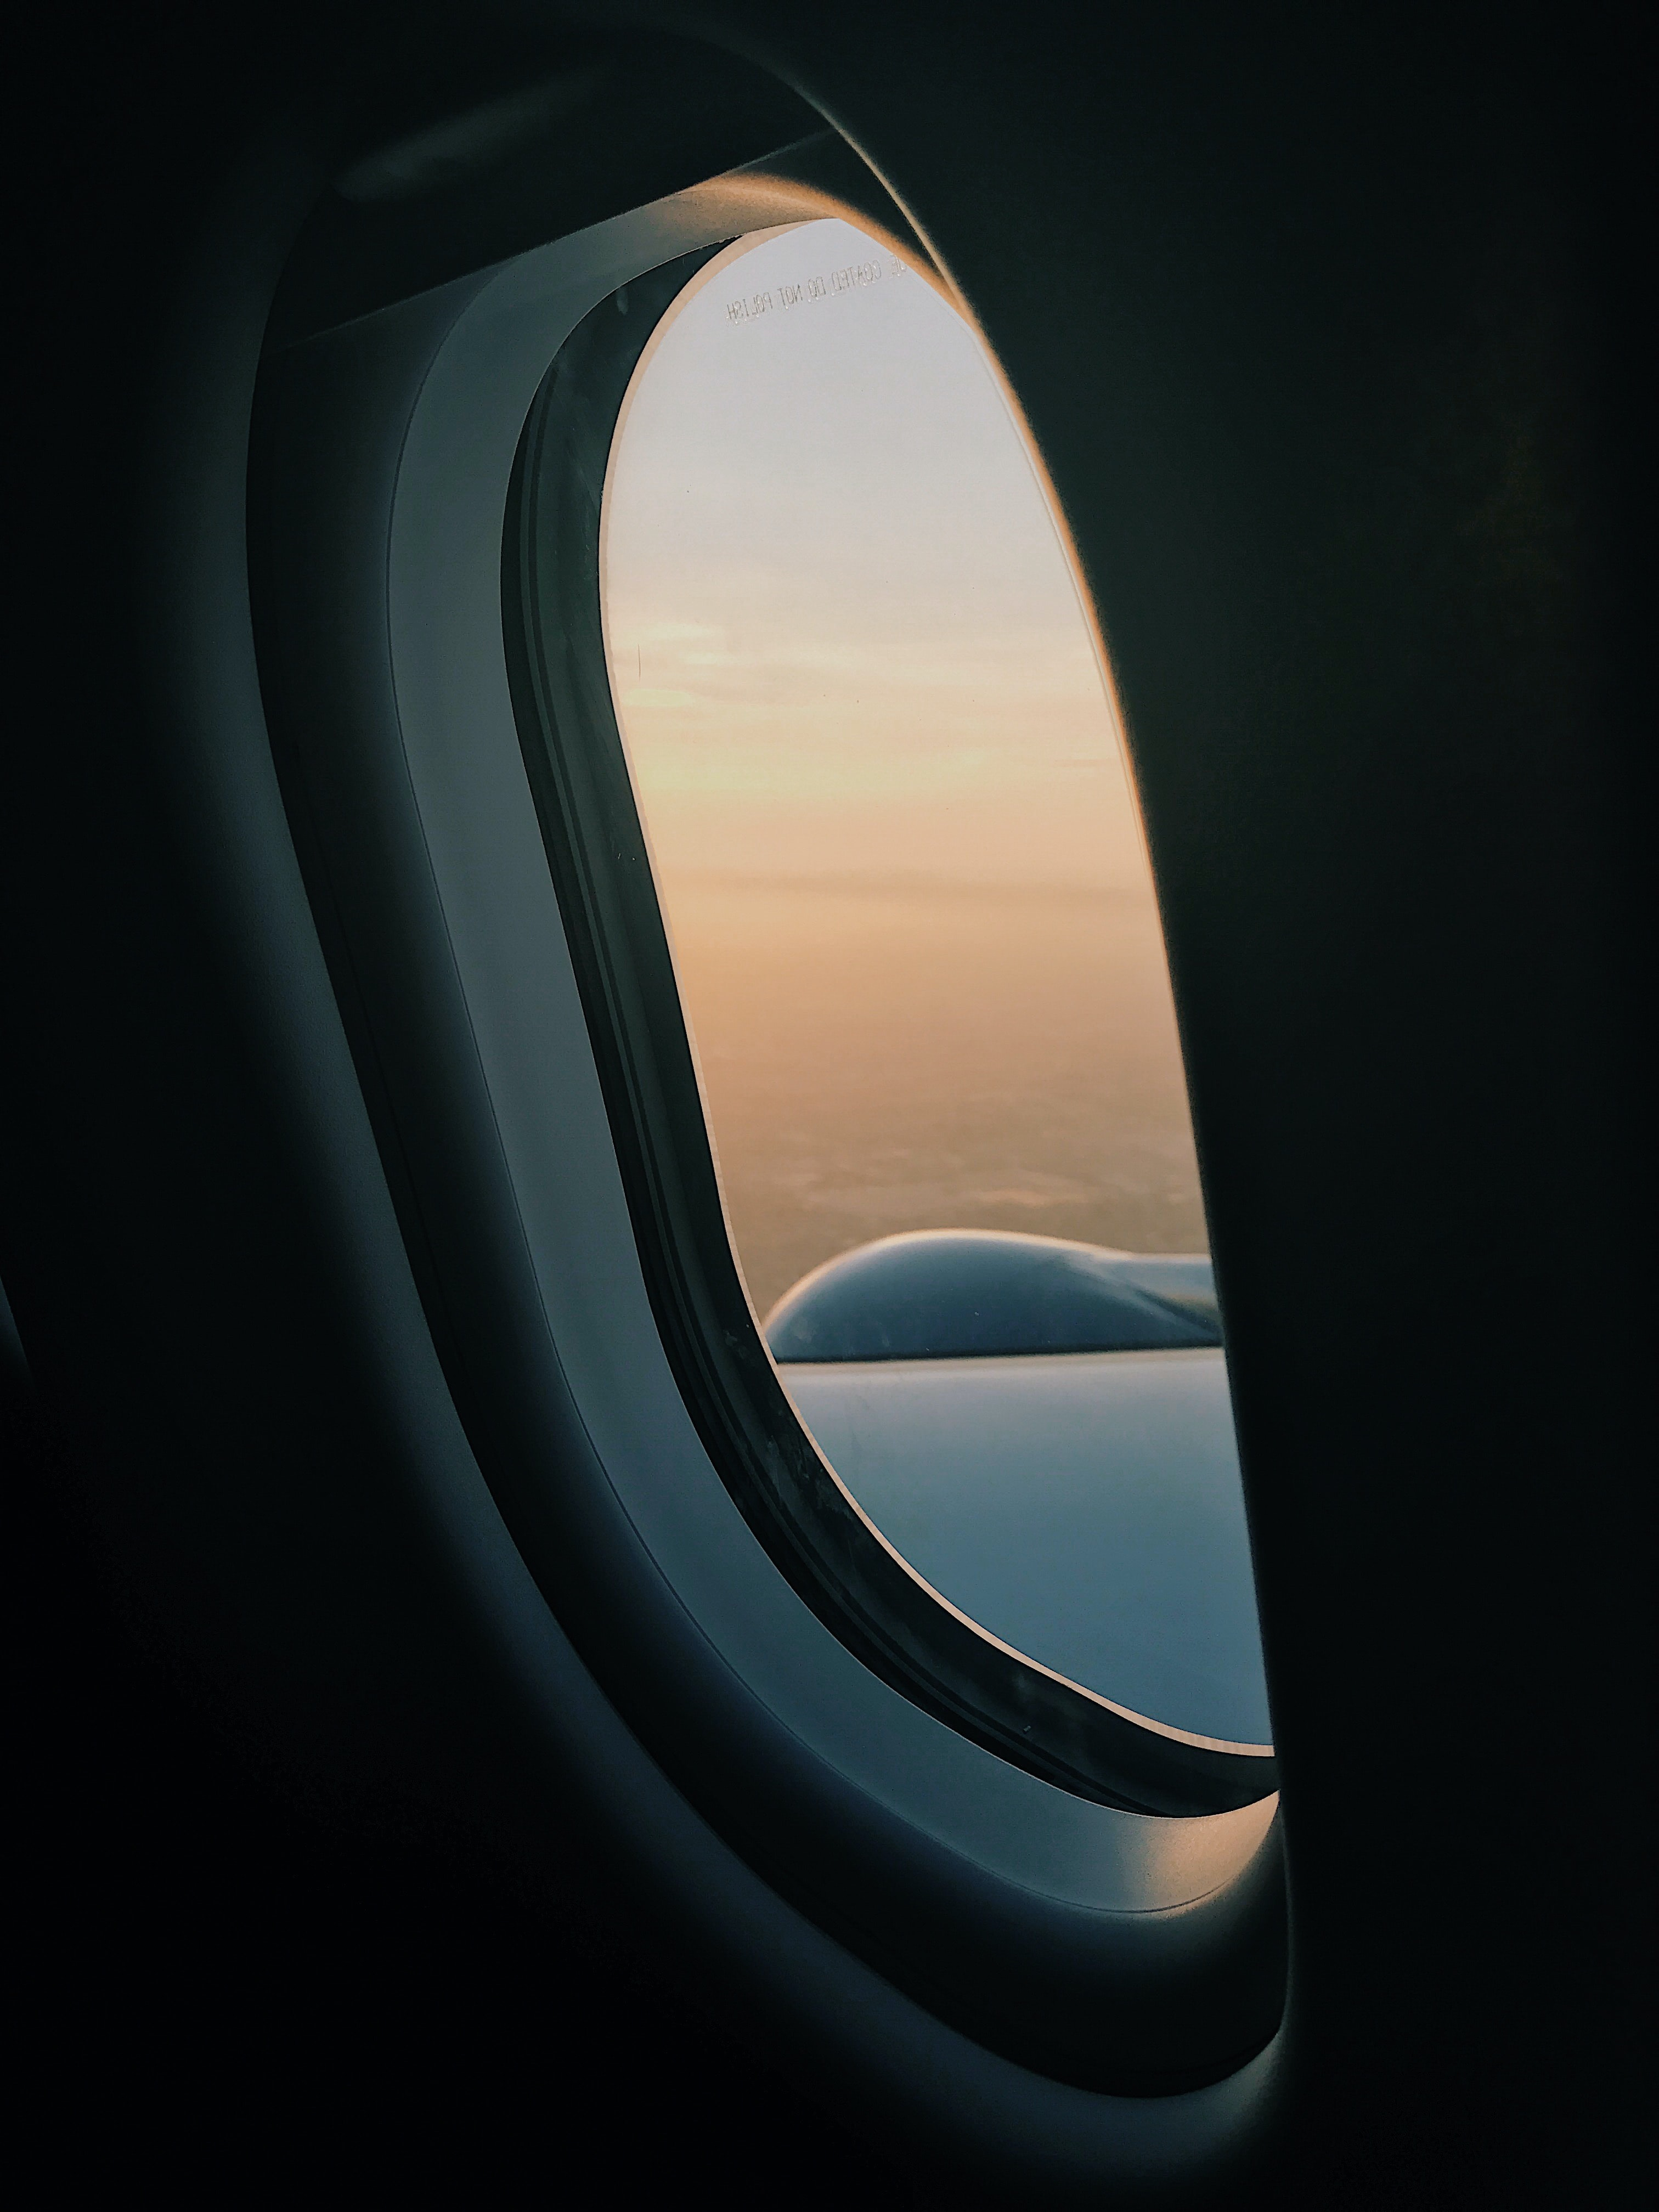 View through an airplane window on the sky at sunset